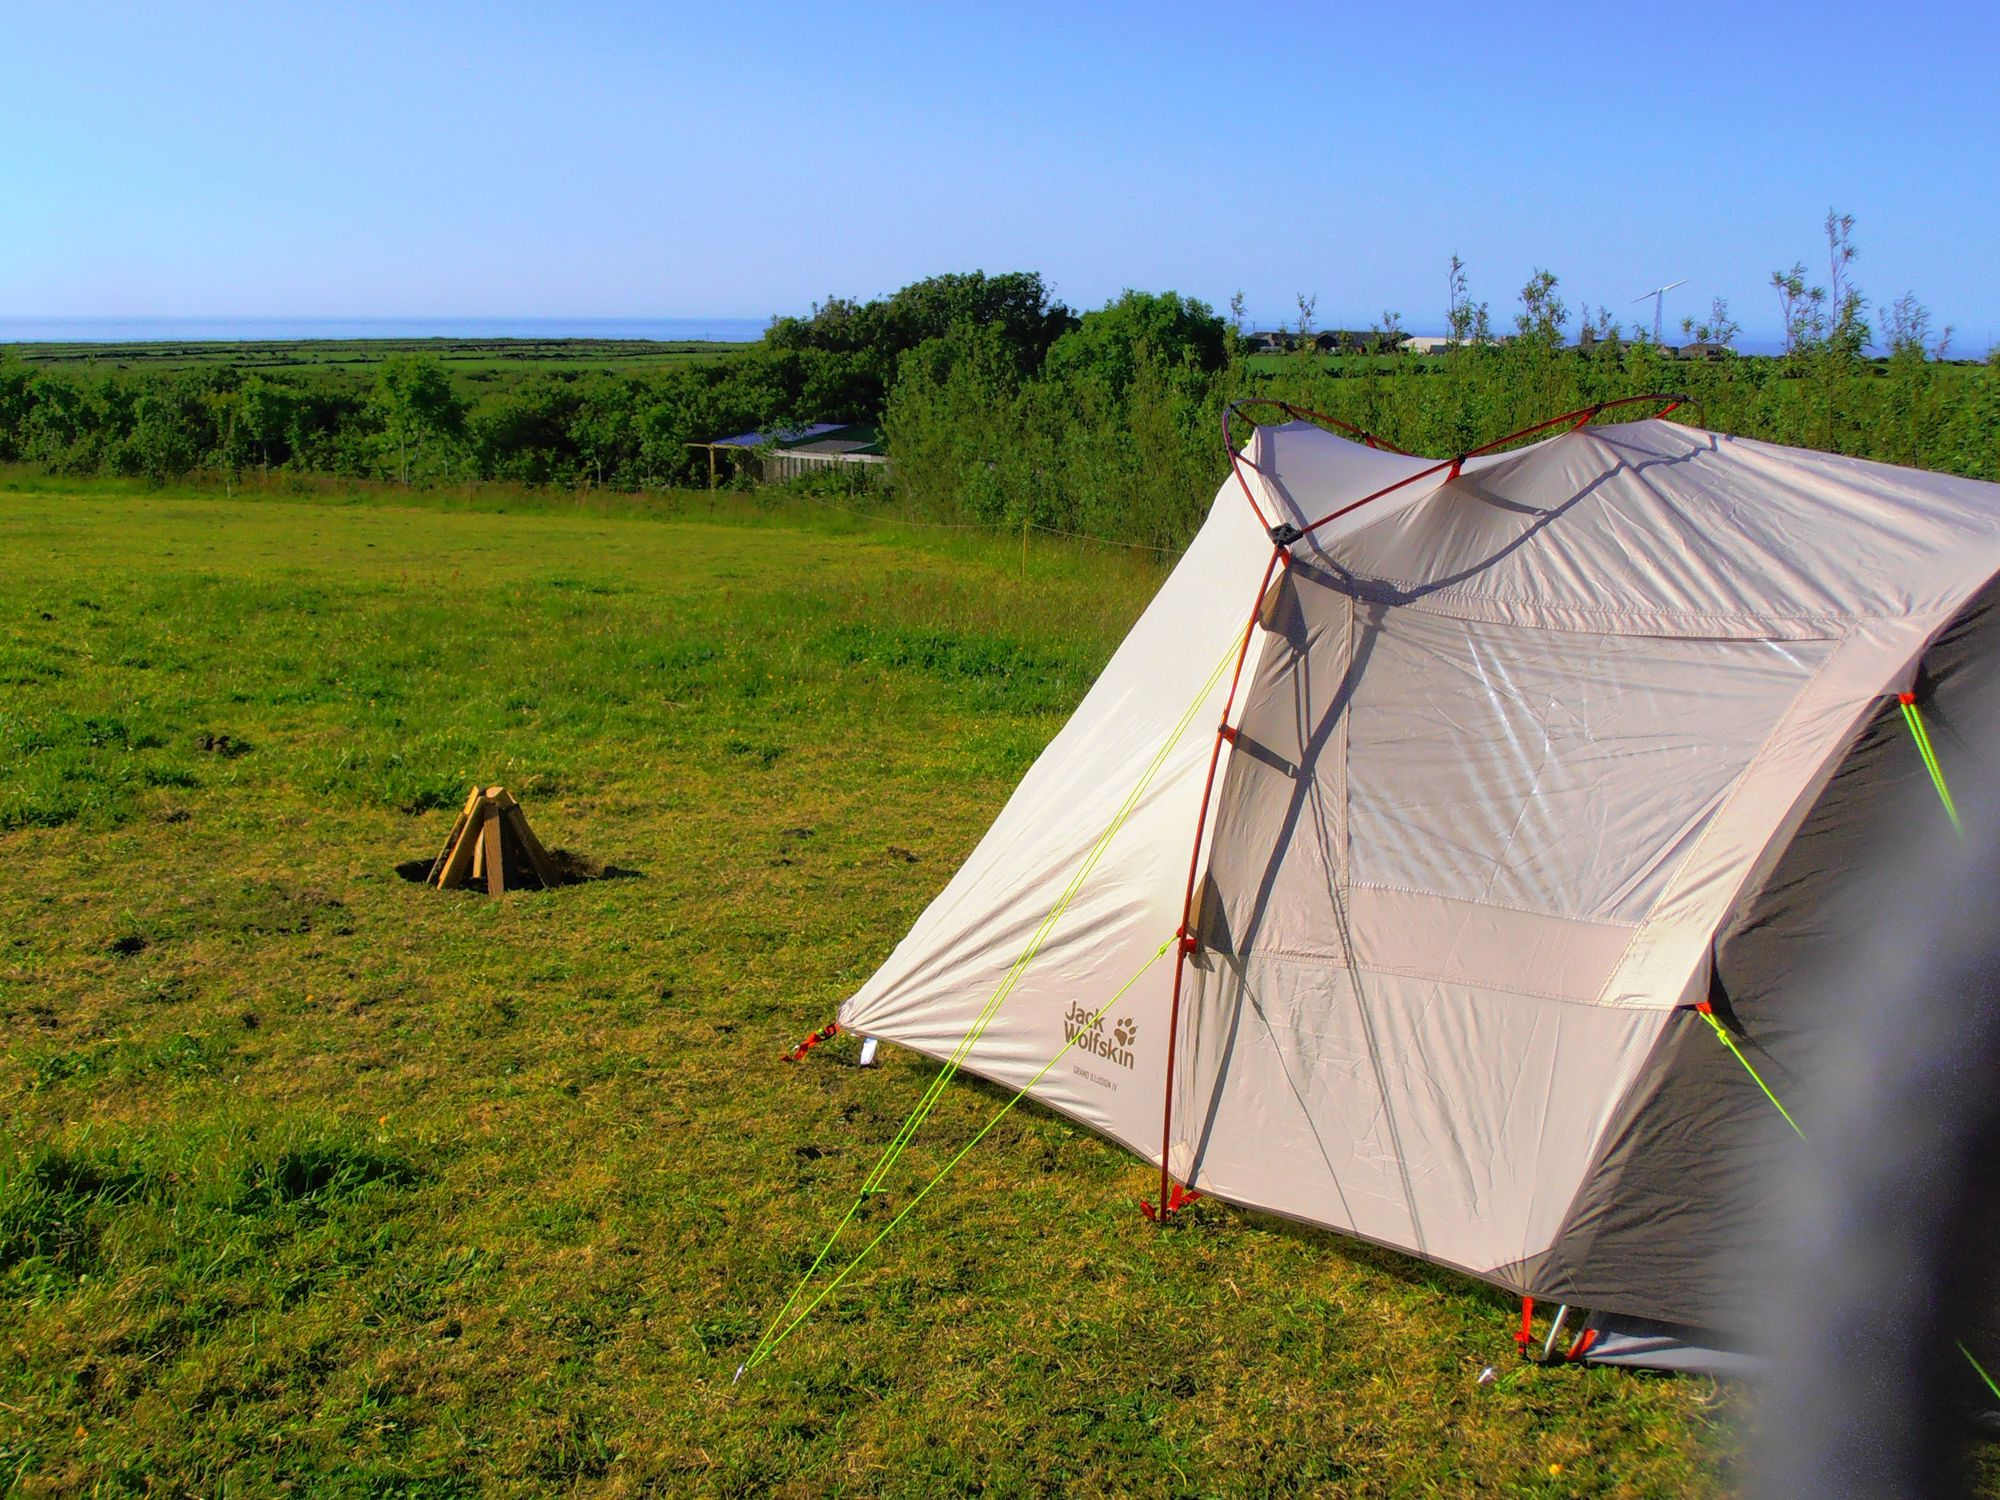 Glamping in Penzance – Cool Camping